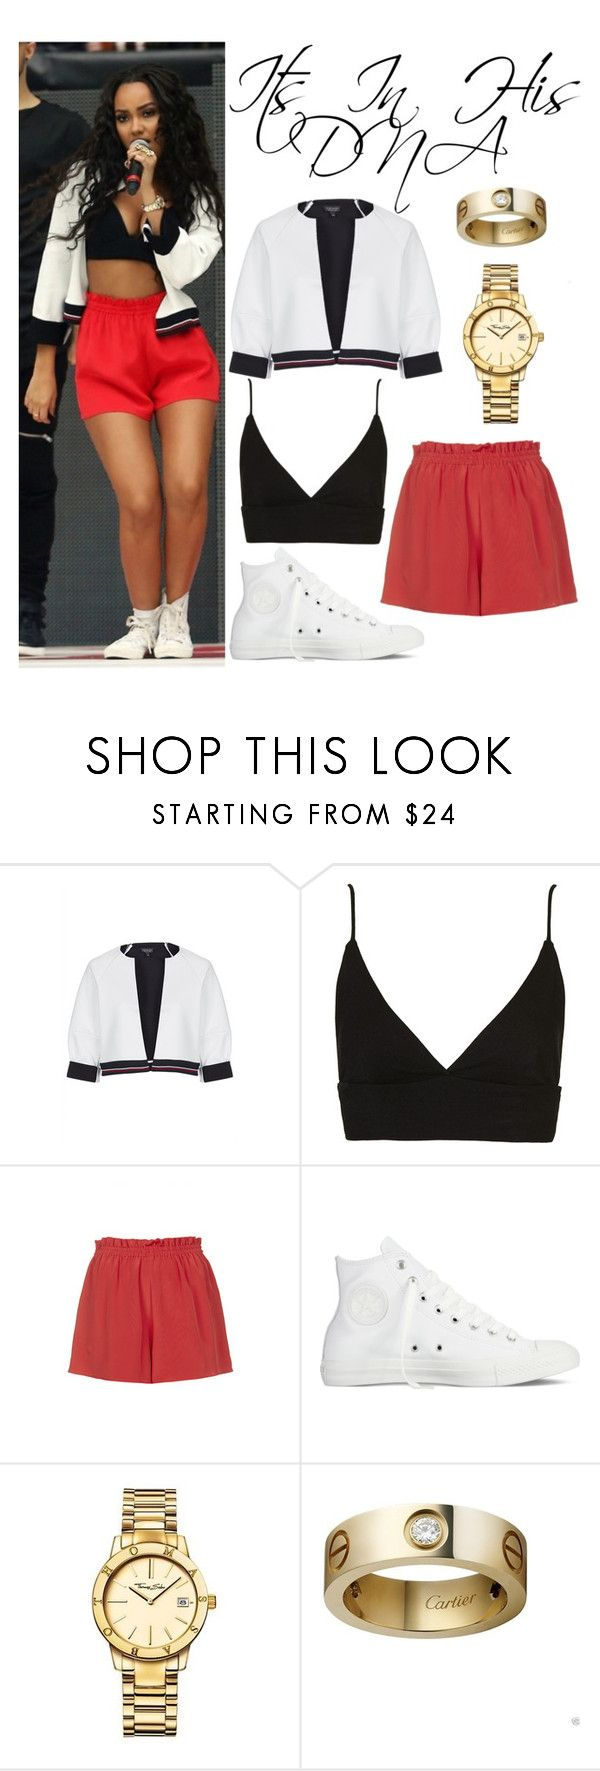 """Leigh Anne Pinnock Wembley 10/26/14"" by katiehorror ❤ liked on Polyvore featuring Topshop, Boutique, Converse, Thomas Sabo and Cartier"